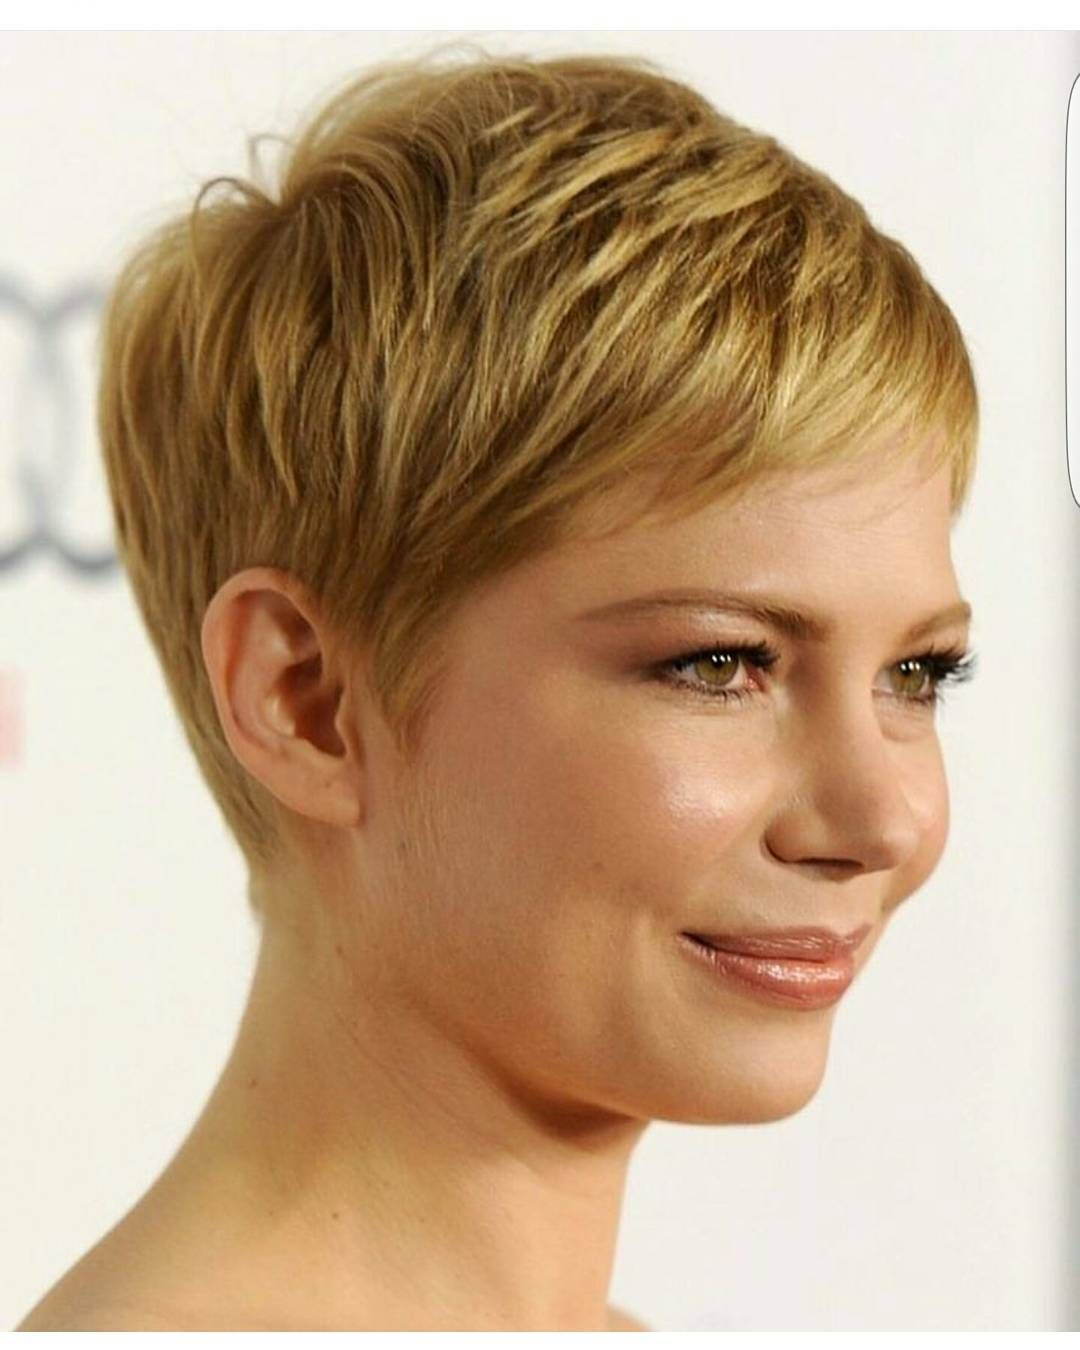 Give Me One Word Short Hair Trends Short Hair With Layers Haircuts For Fine Hair